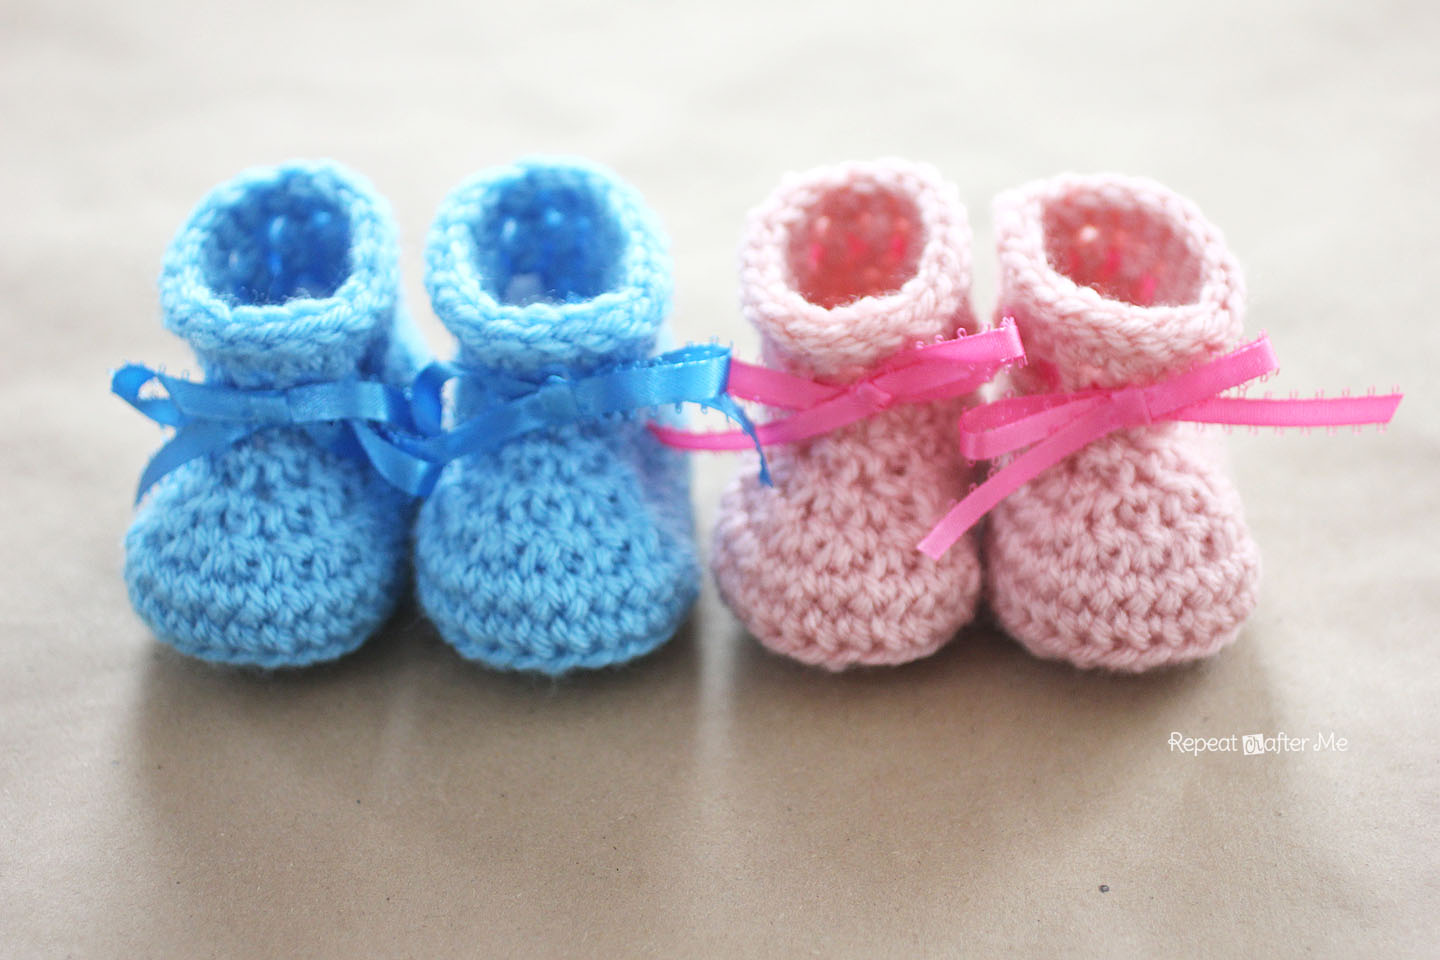 Crochet Pattern Easy Baby Booties : Crochet Newborn Baby Booties Pattern - Repeat Crafter Me